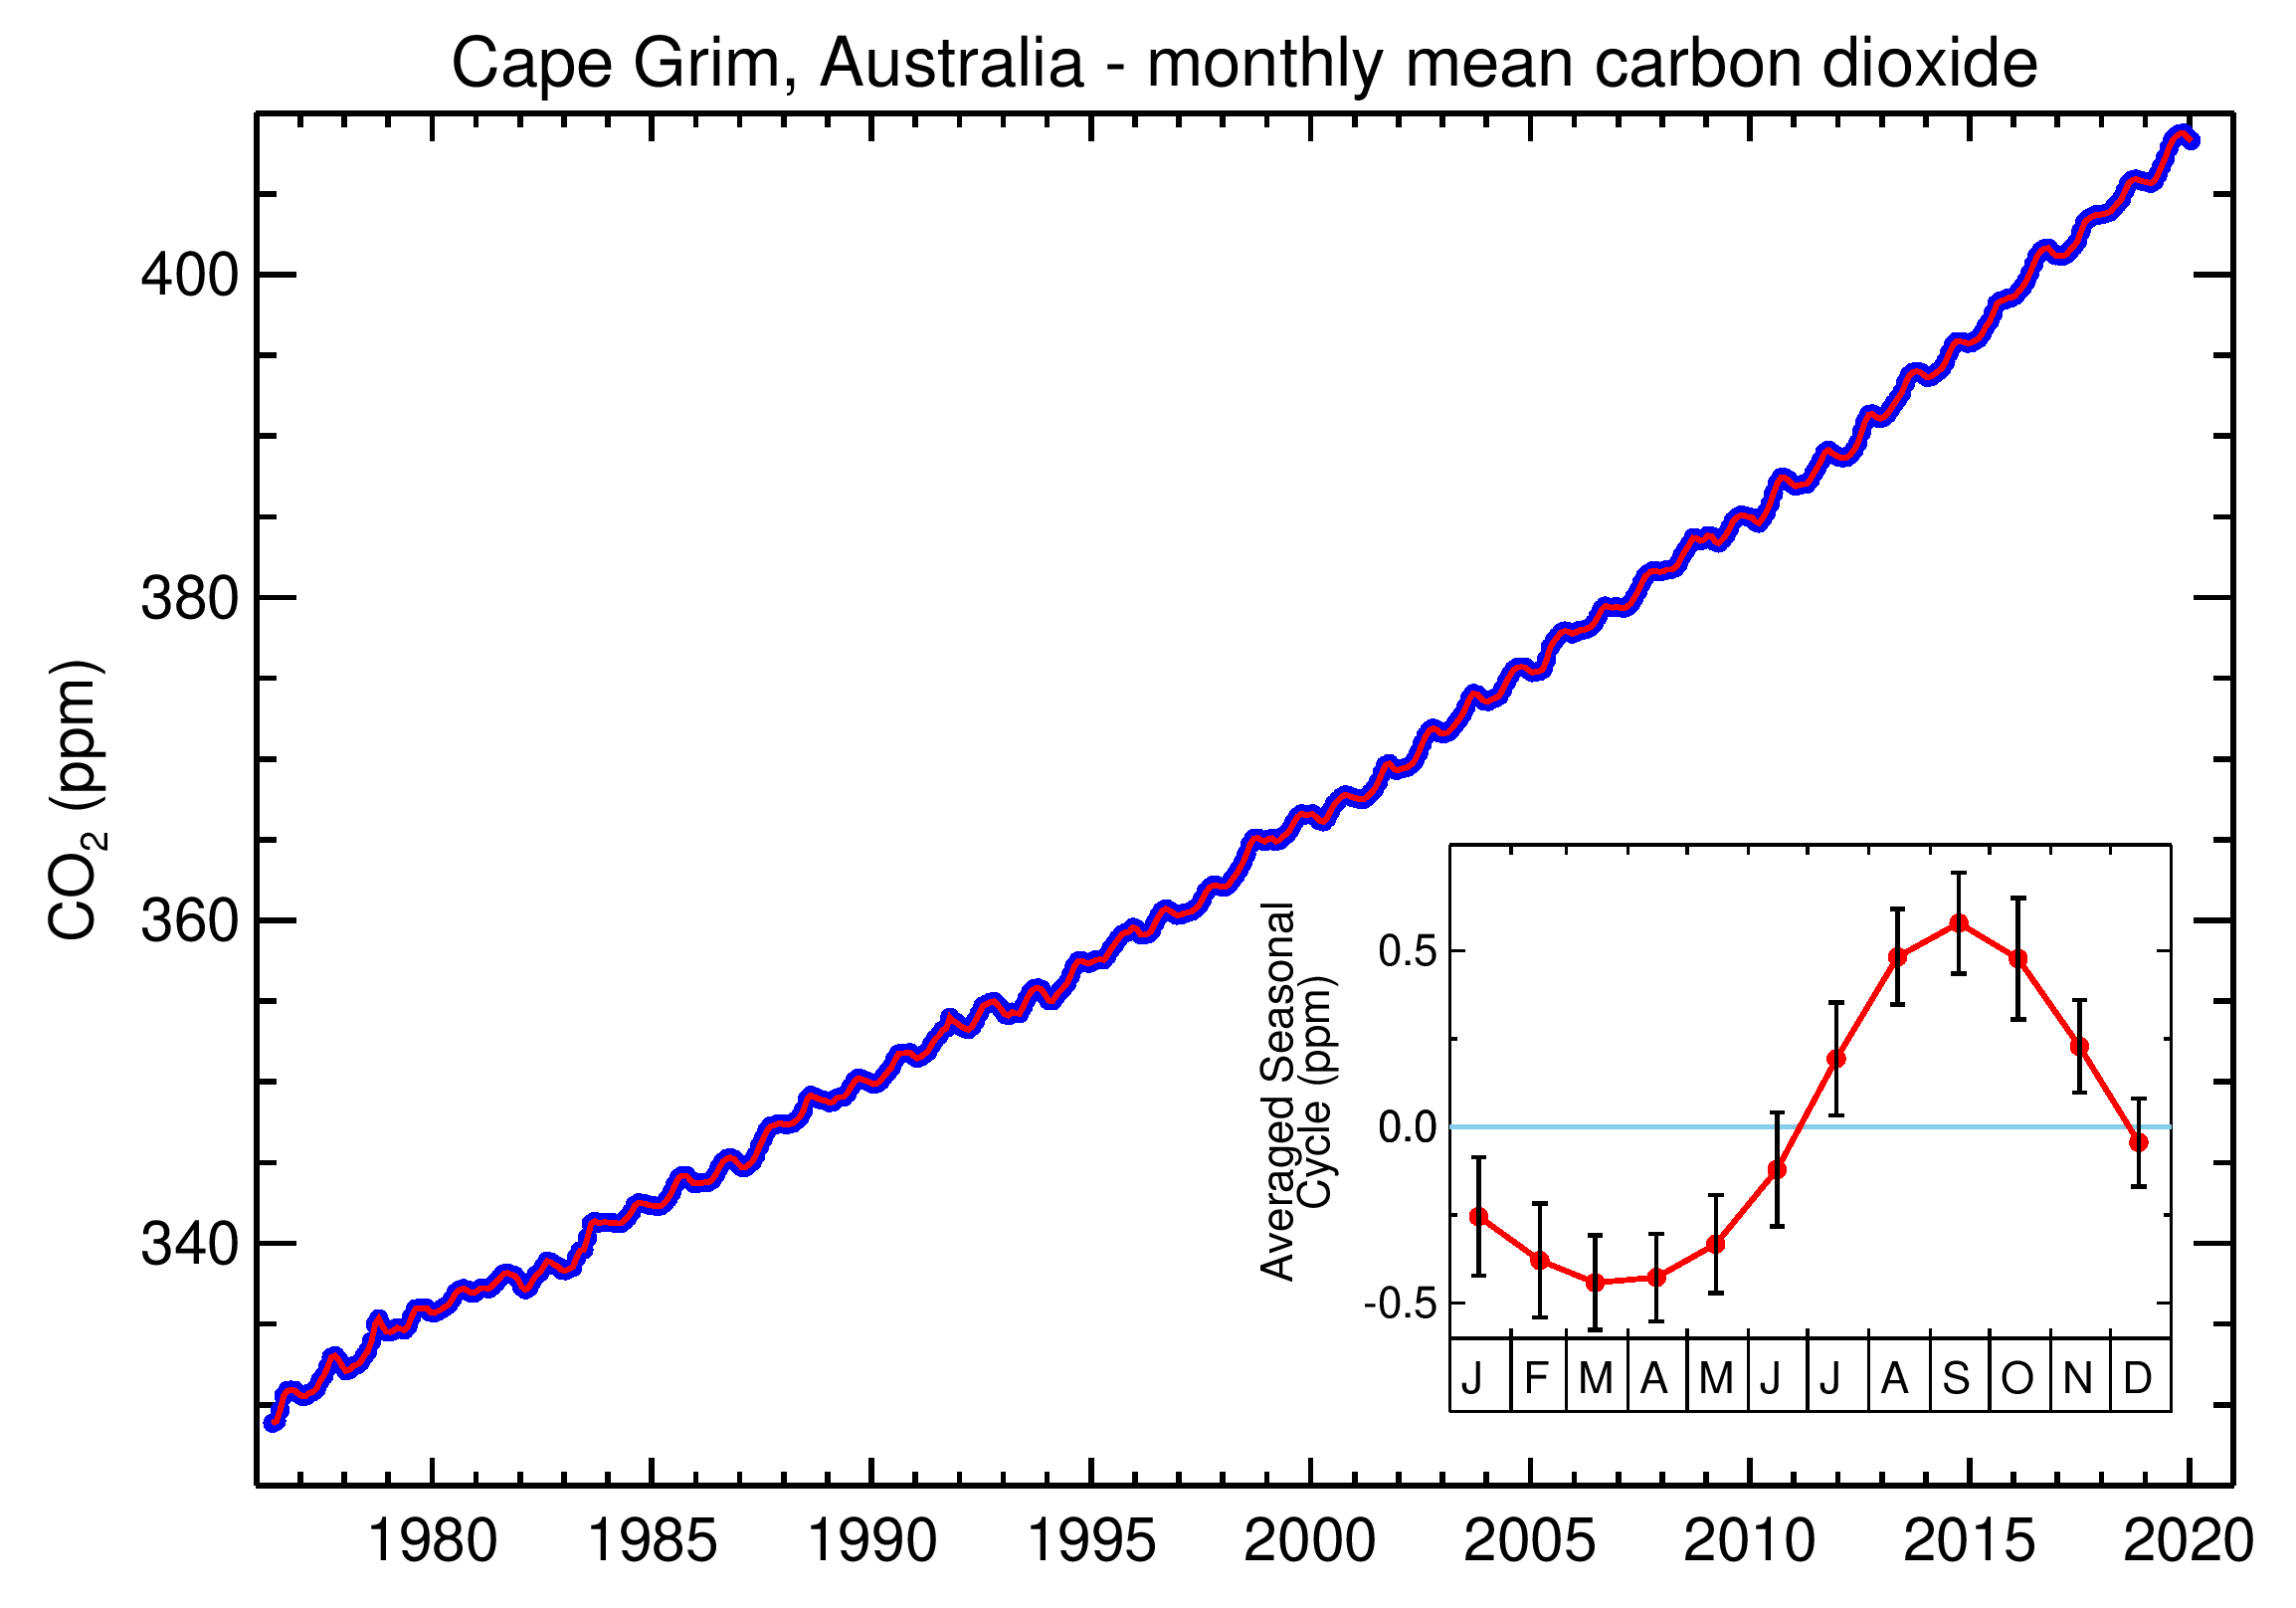 Chart showing Cape Grim monthly mean CO2 from 1980